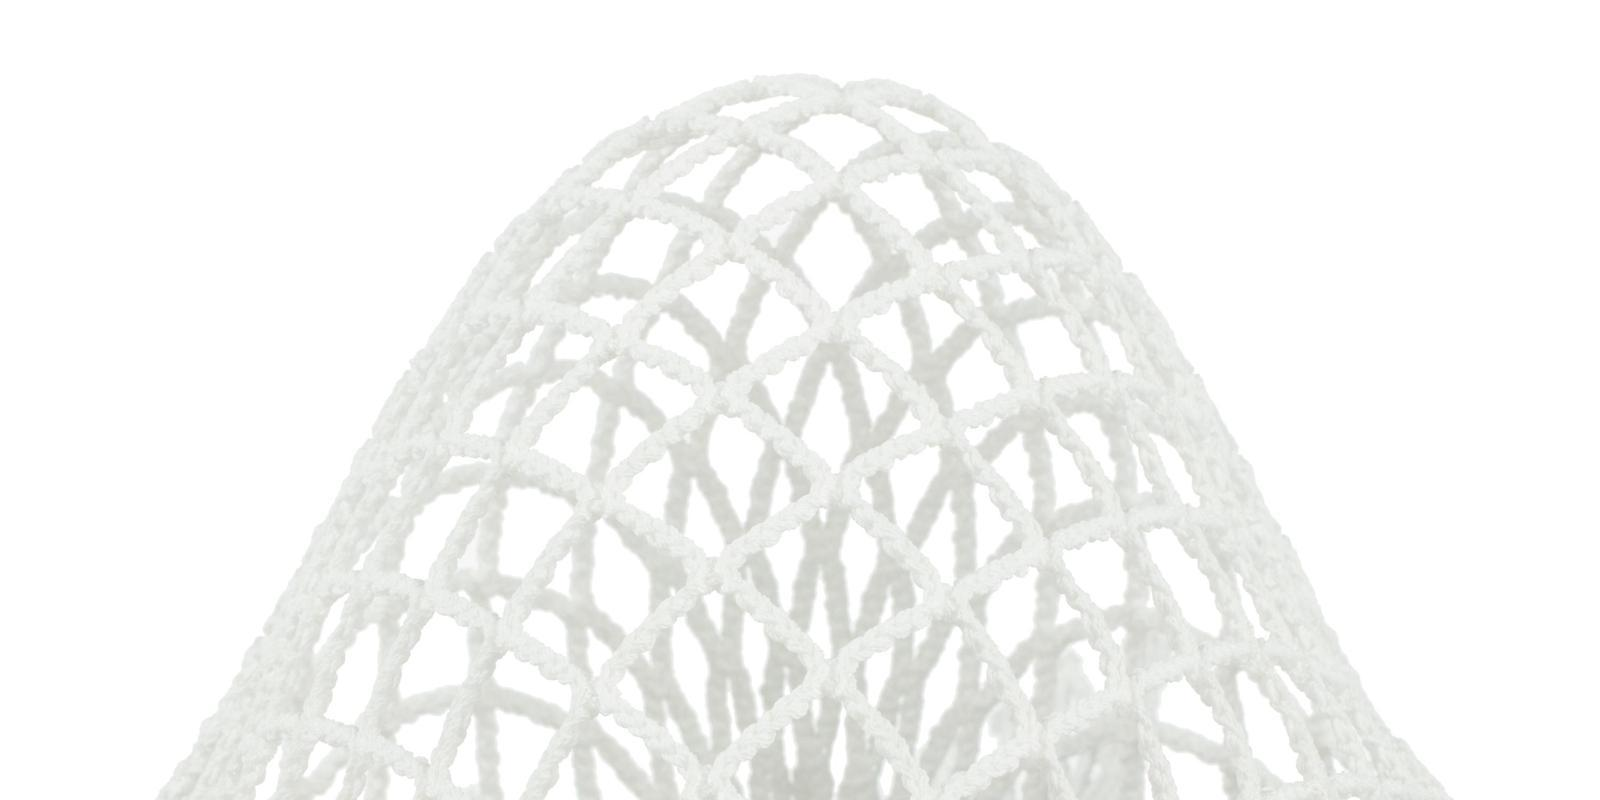 StringKing Grizzly 2 Lacrosse Goalie Mesh Pocket Category Image